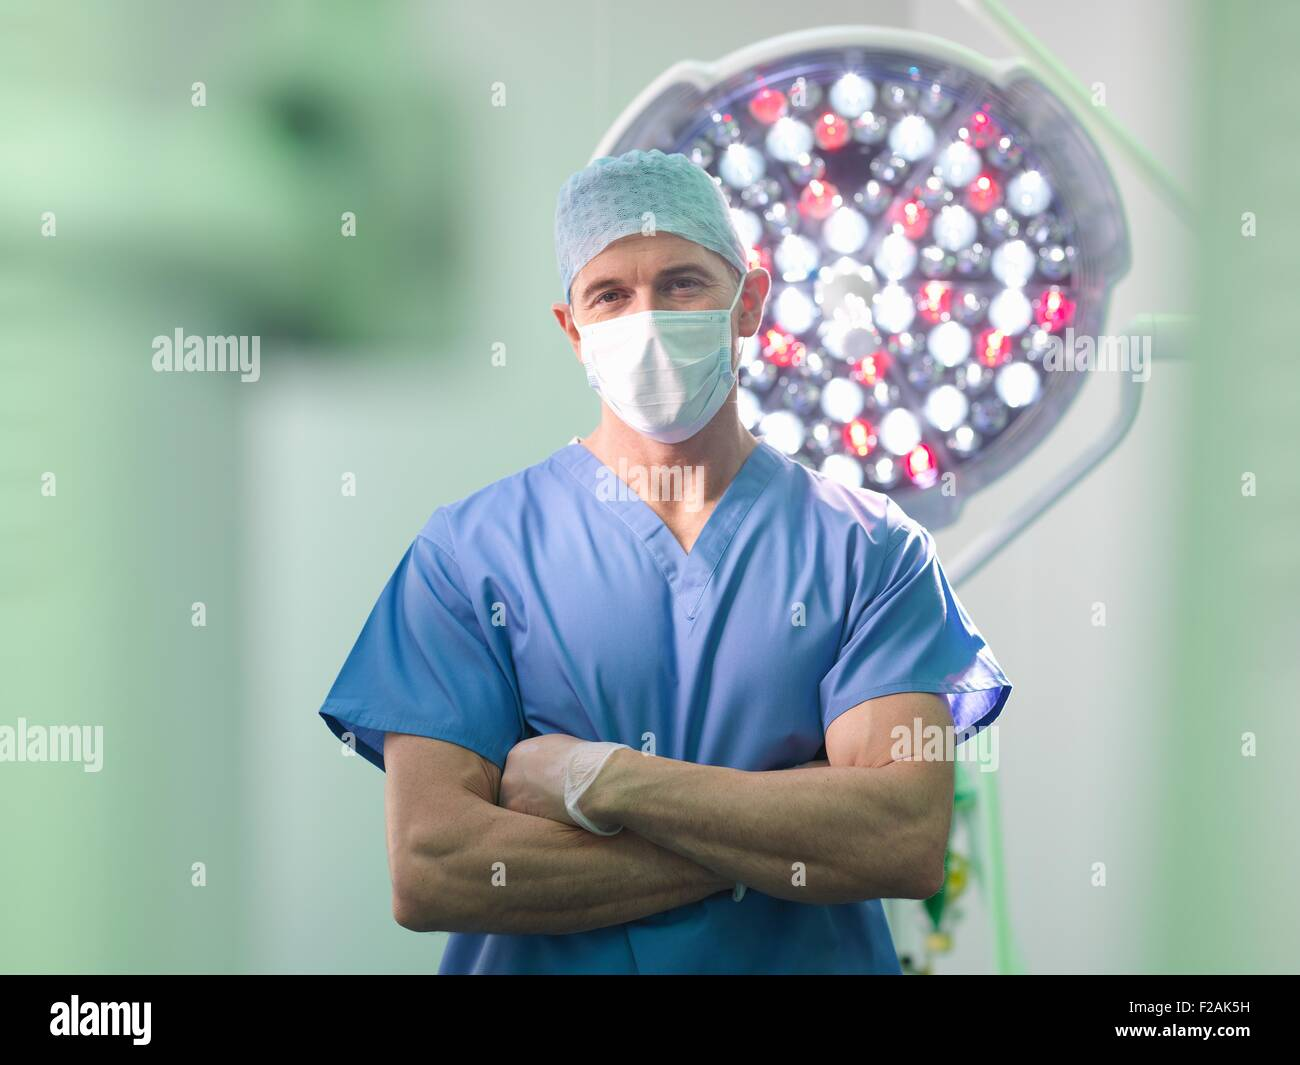 Orthopaedic surgeon in operating theatre, portrait - Stock Image